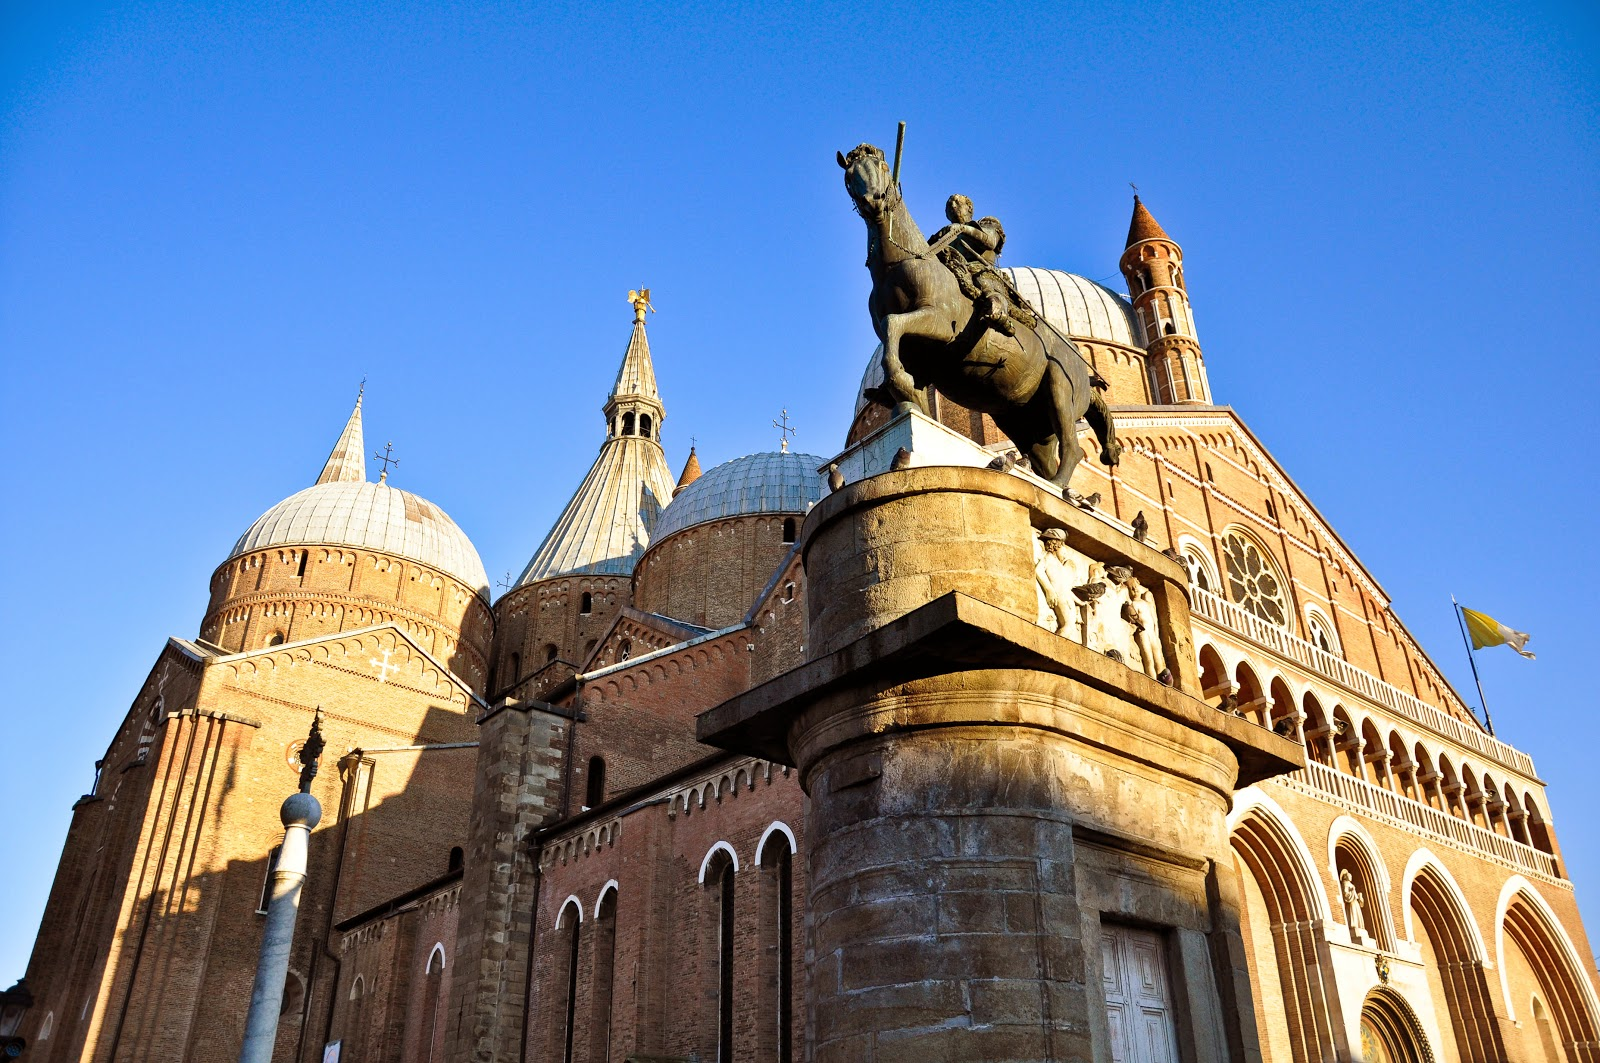 A horseman by Donatello in Padua, Italy